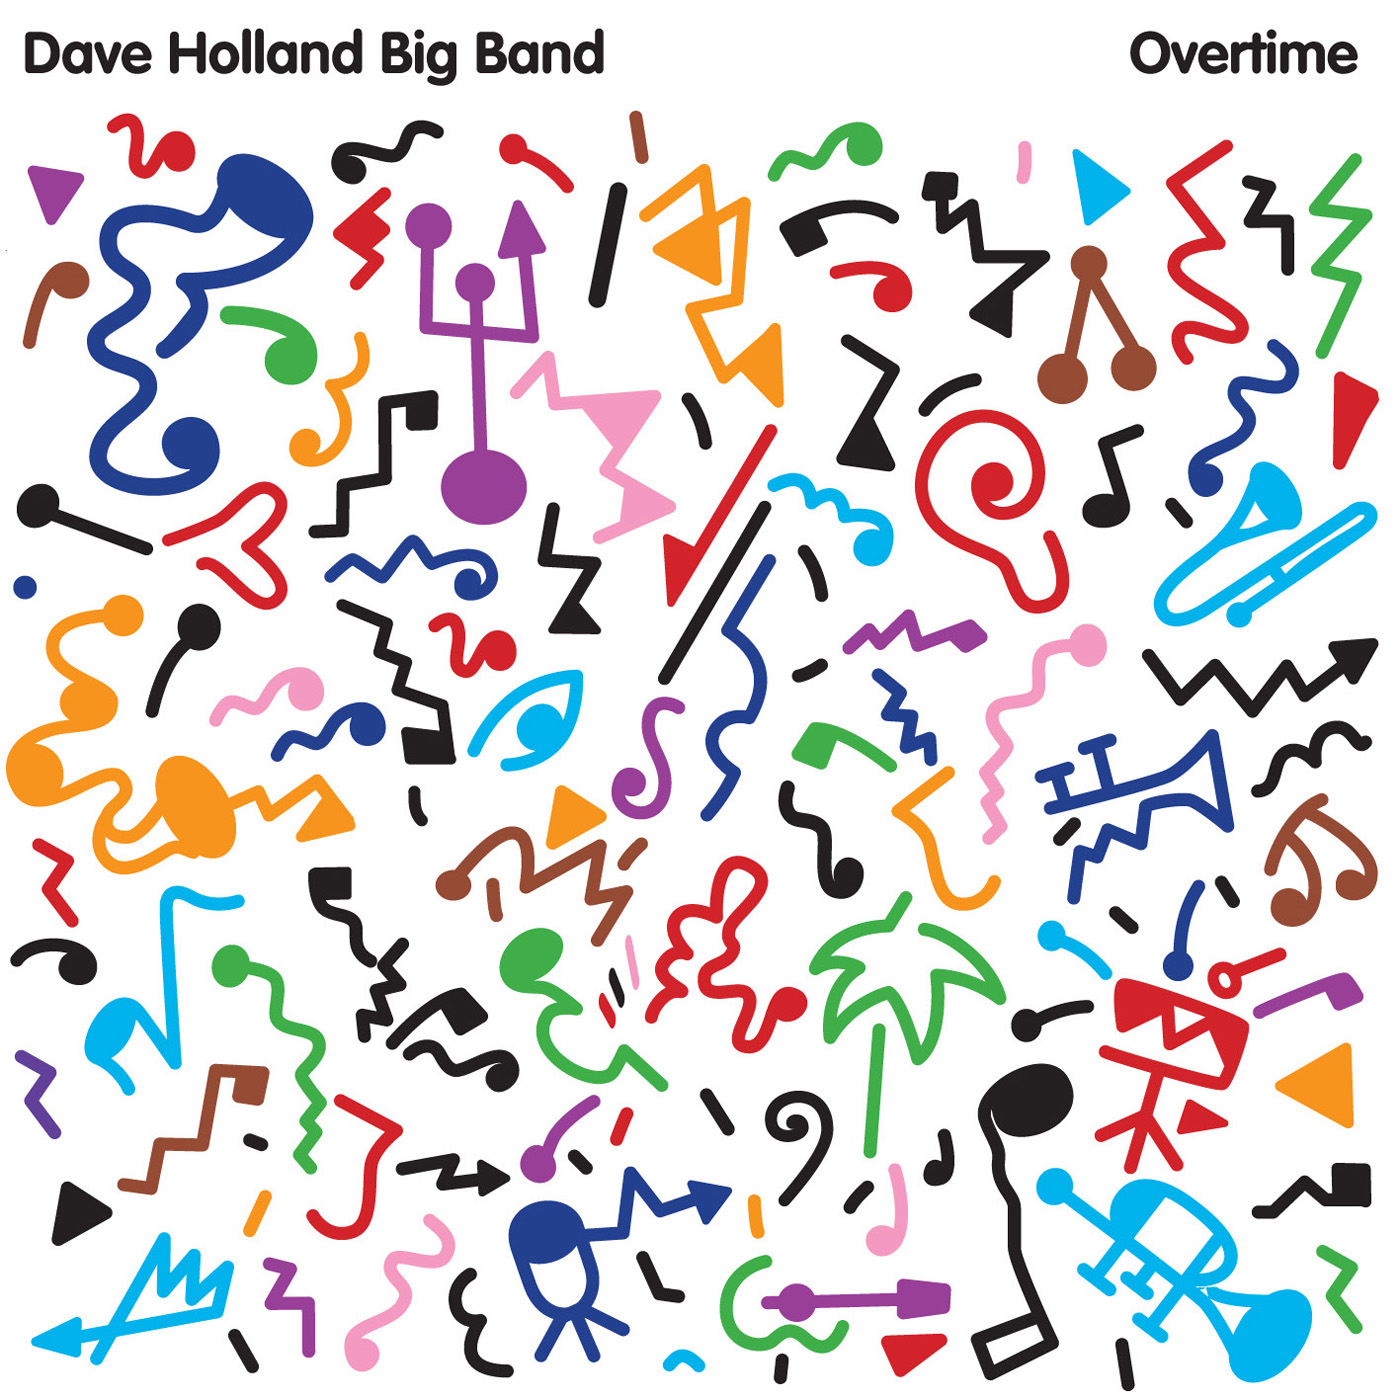 Overtime by dave Holland cover